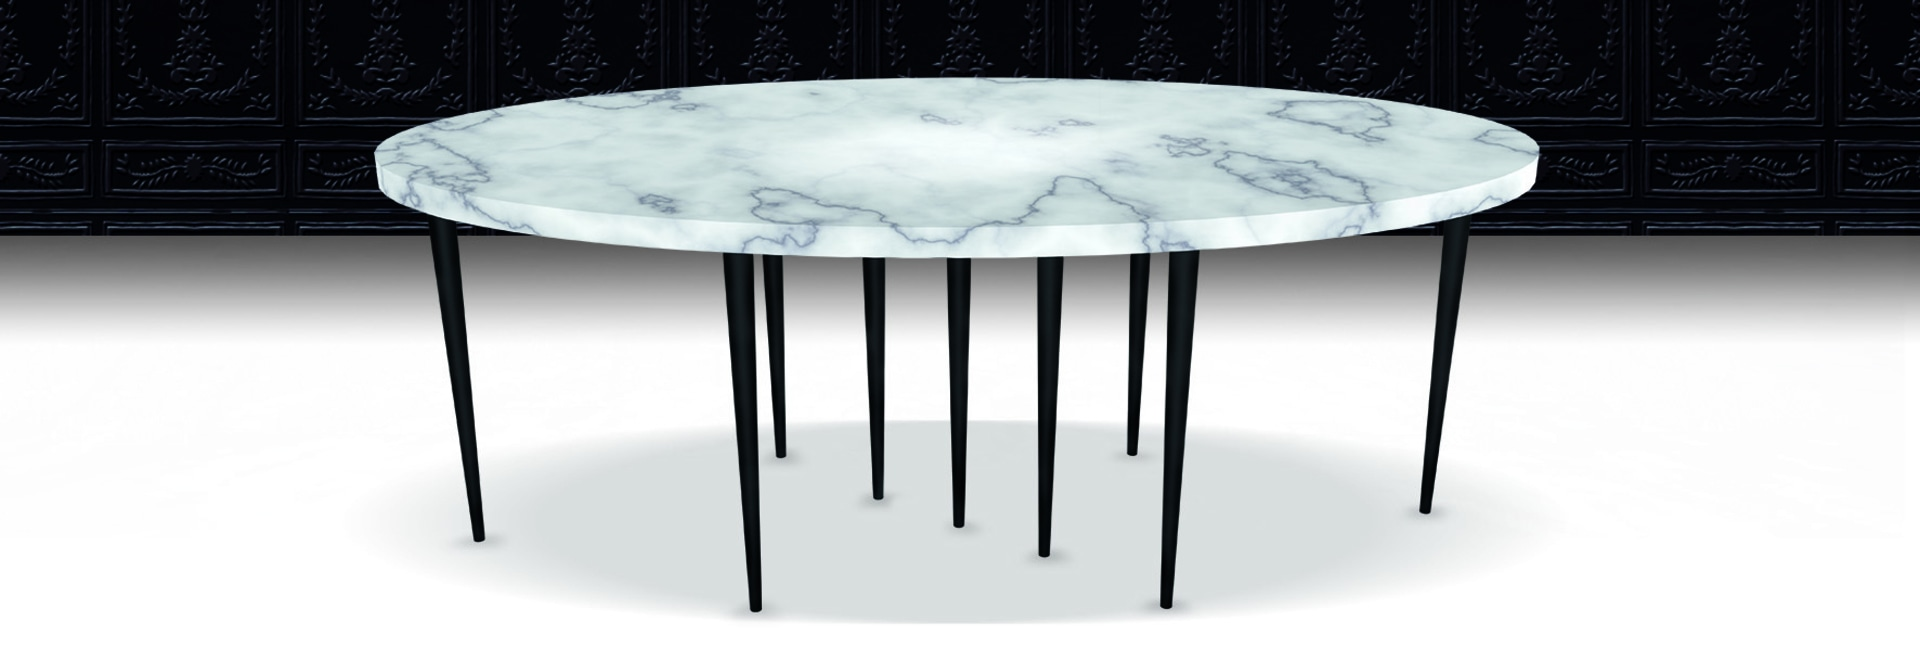 Mille Pied Table by Sylvie Maréchal